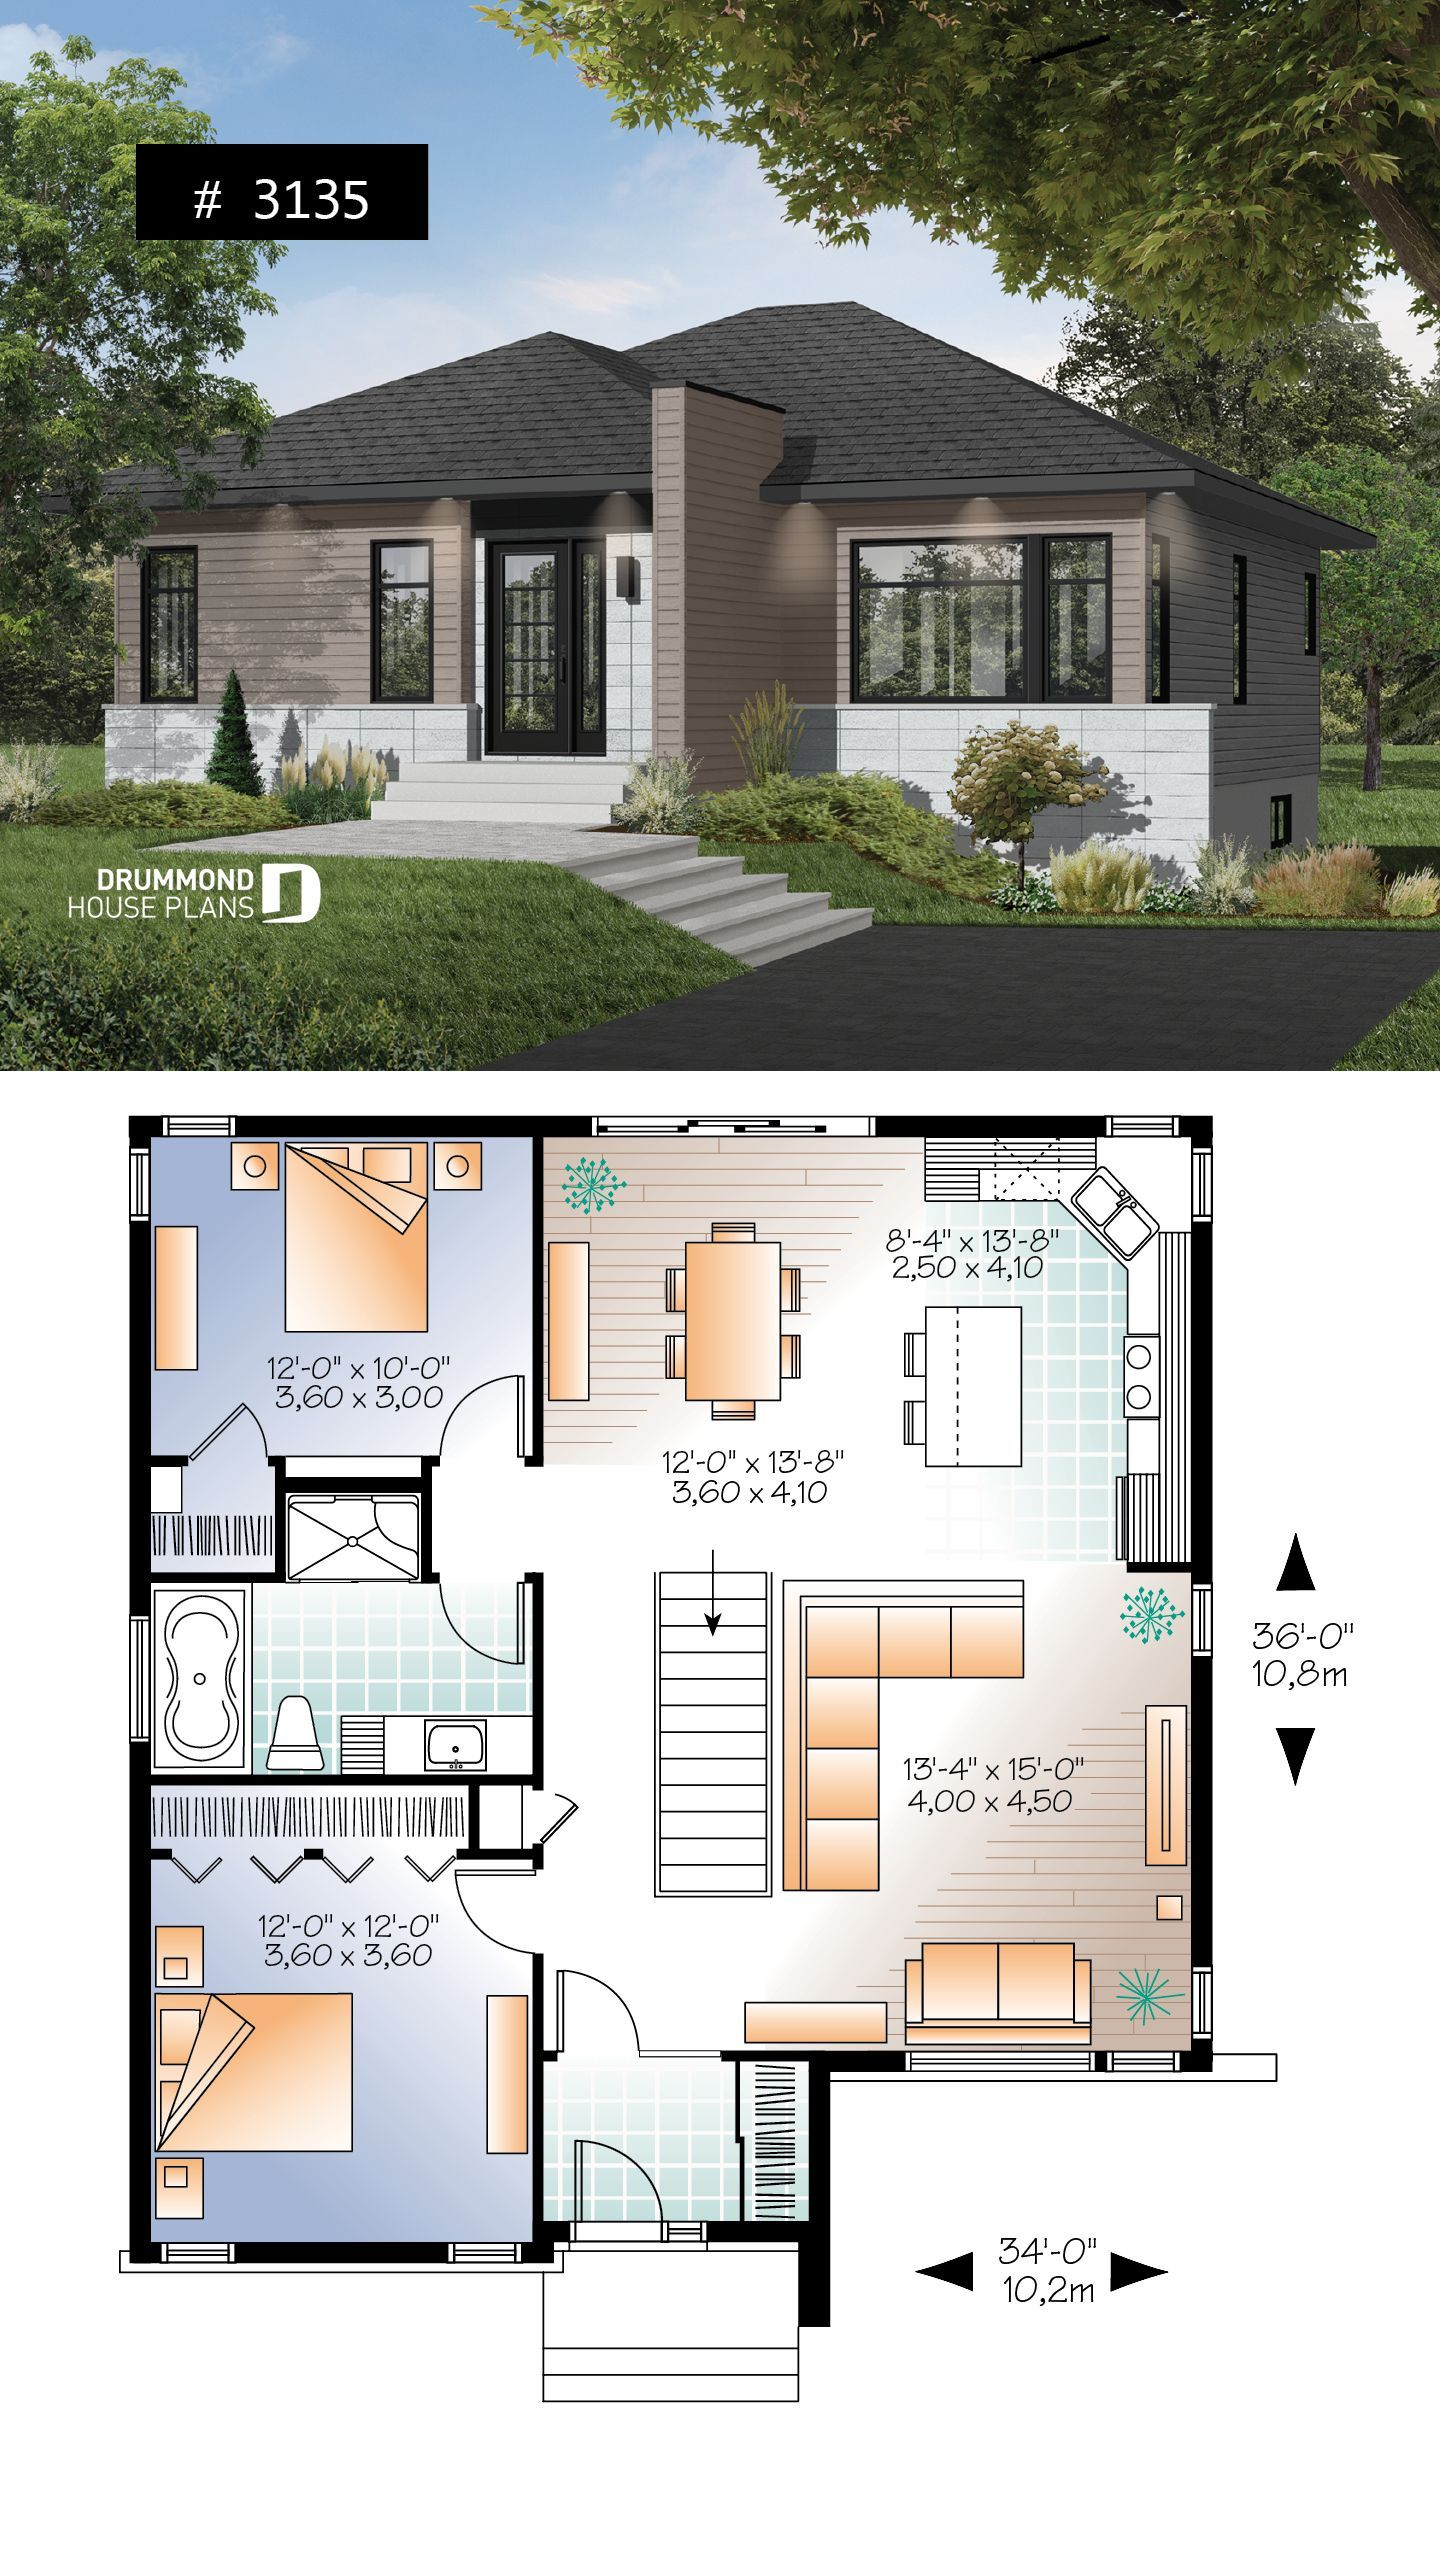 15 Genius Ideas How To Upgrade 3 Bedroom Modern House Design In 2020 Modern House Plans House Plans With Pictures House Plans